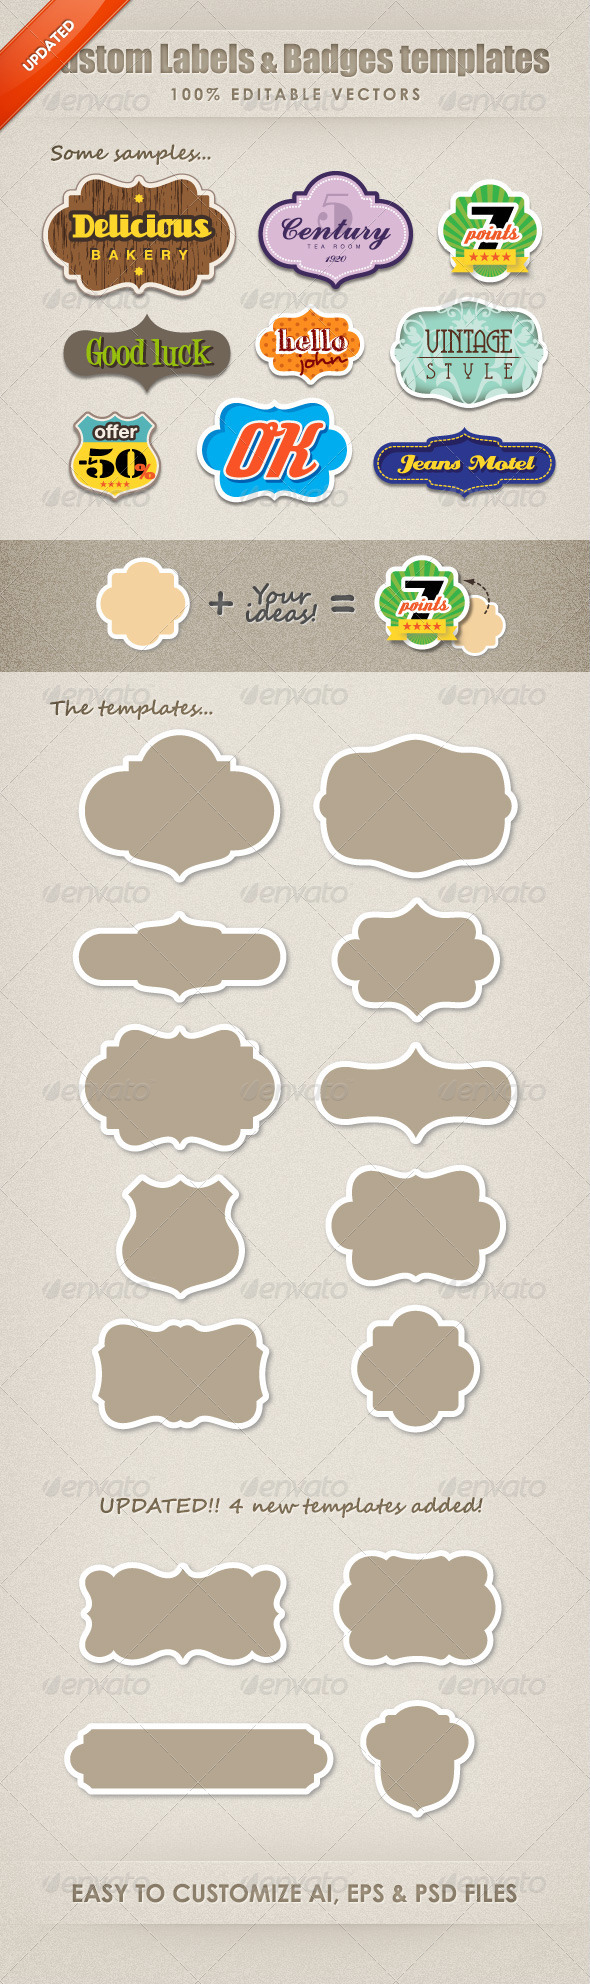 GraphicRiver Custom Labels & badges Templates 649144